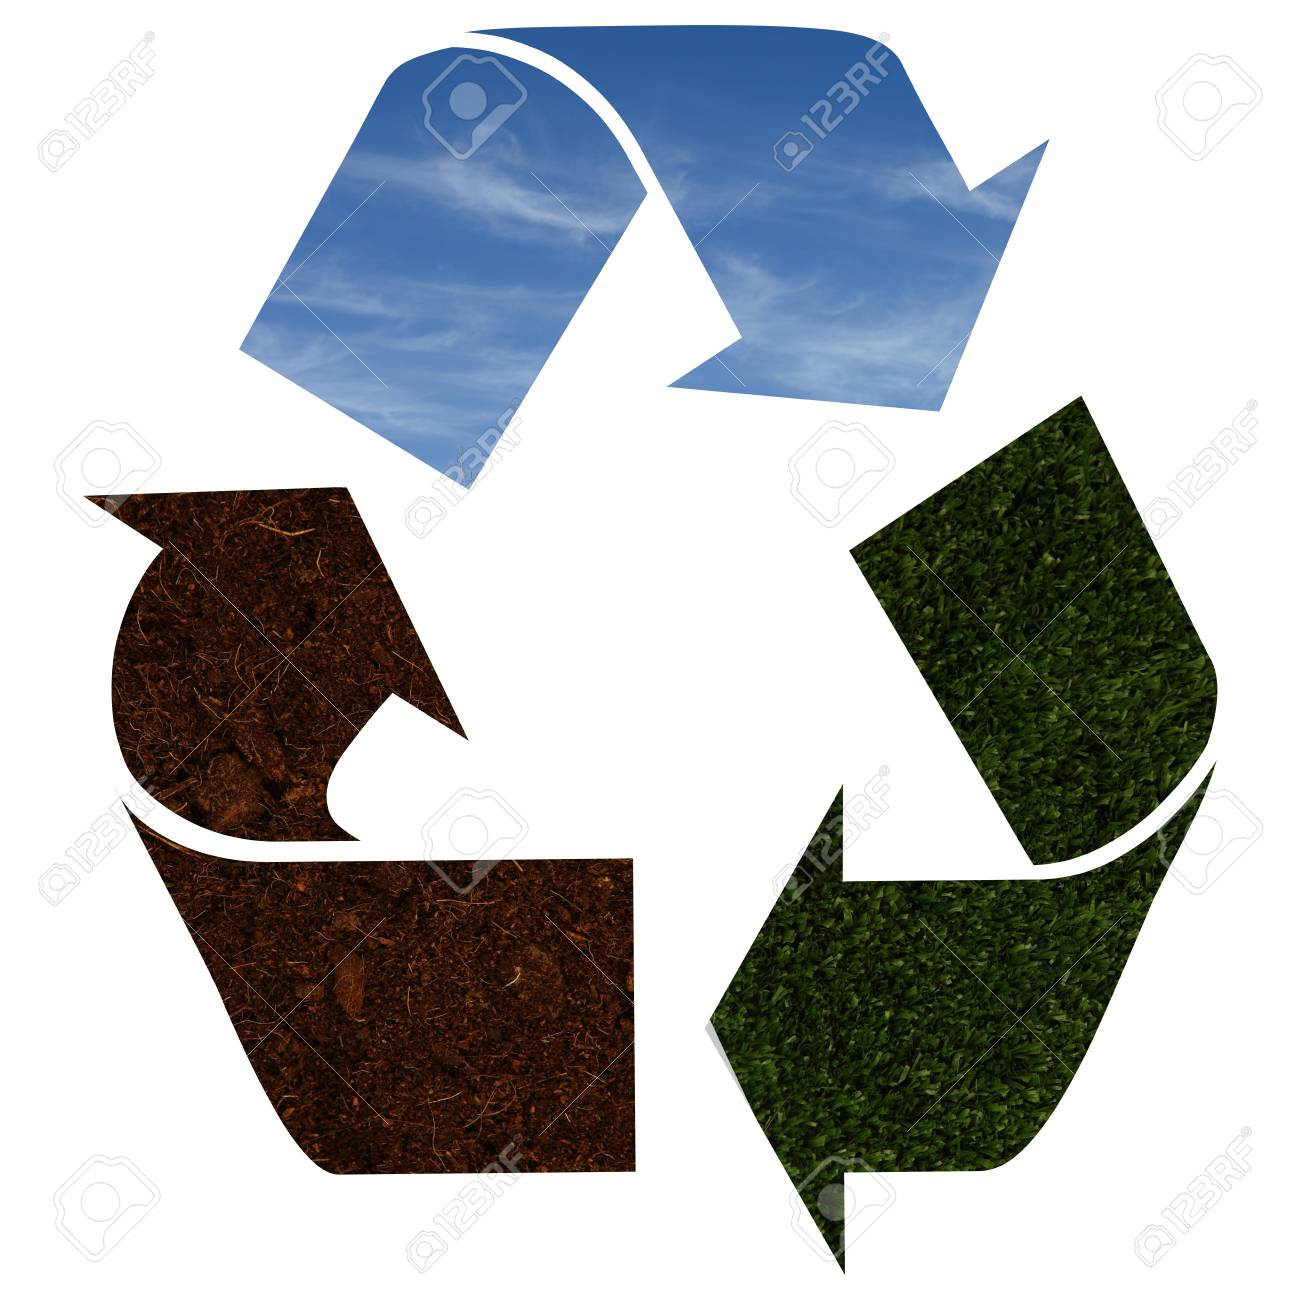 Recycle Icon With Blue Sky Green Grass And Soil Texture